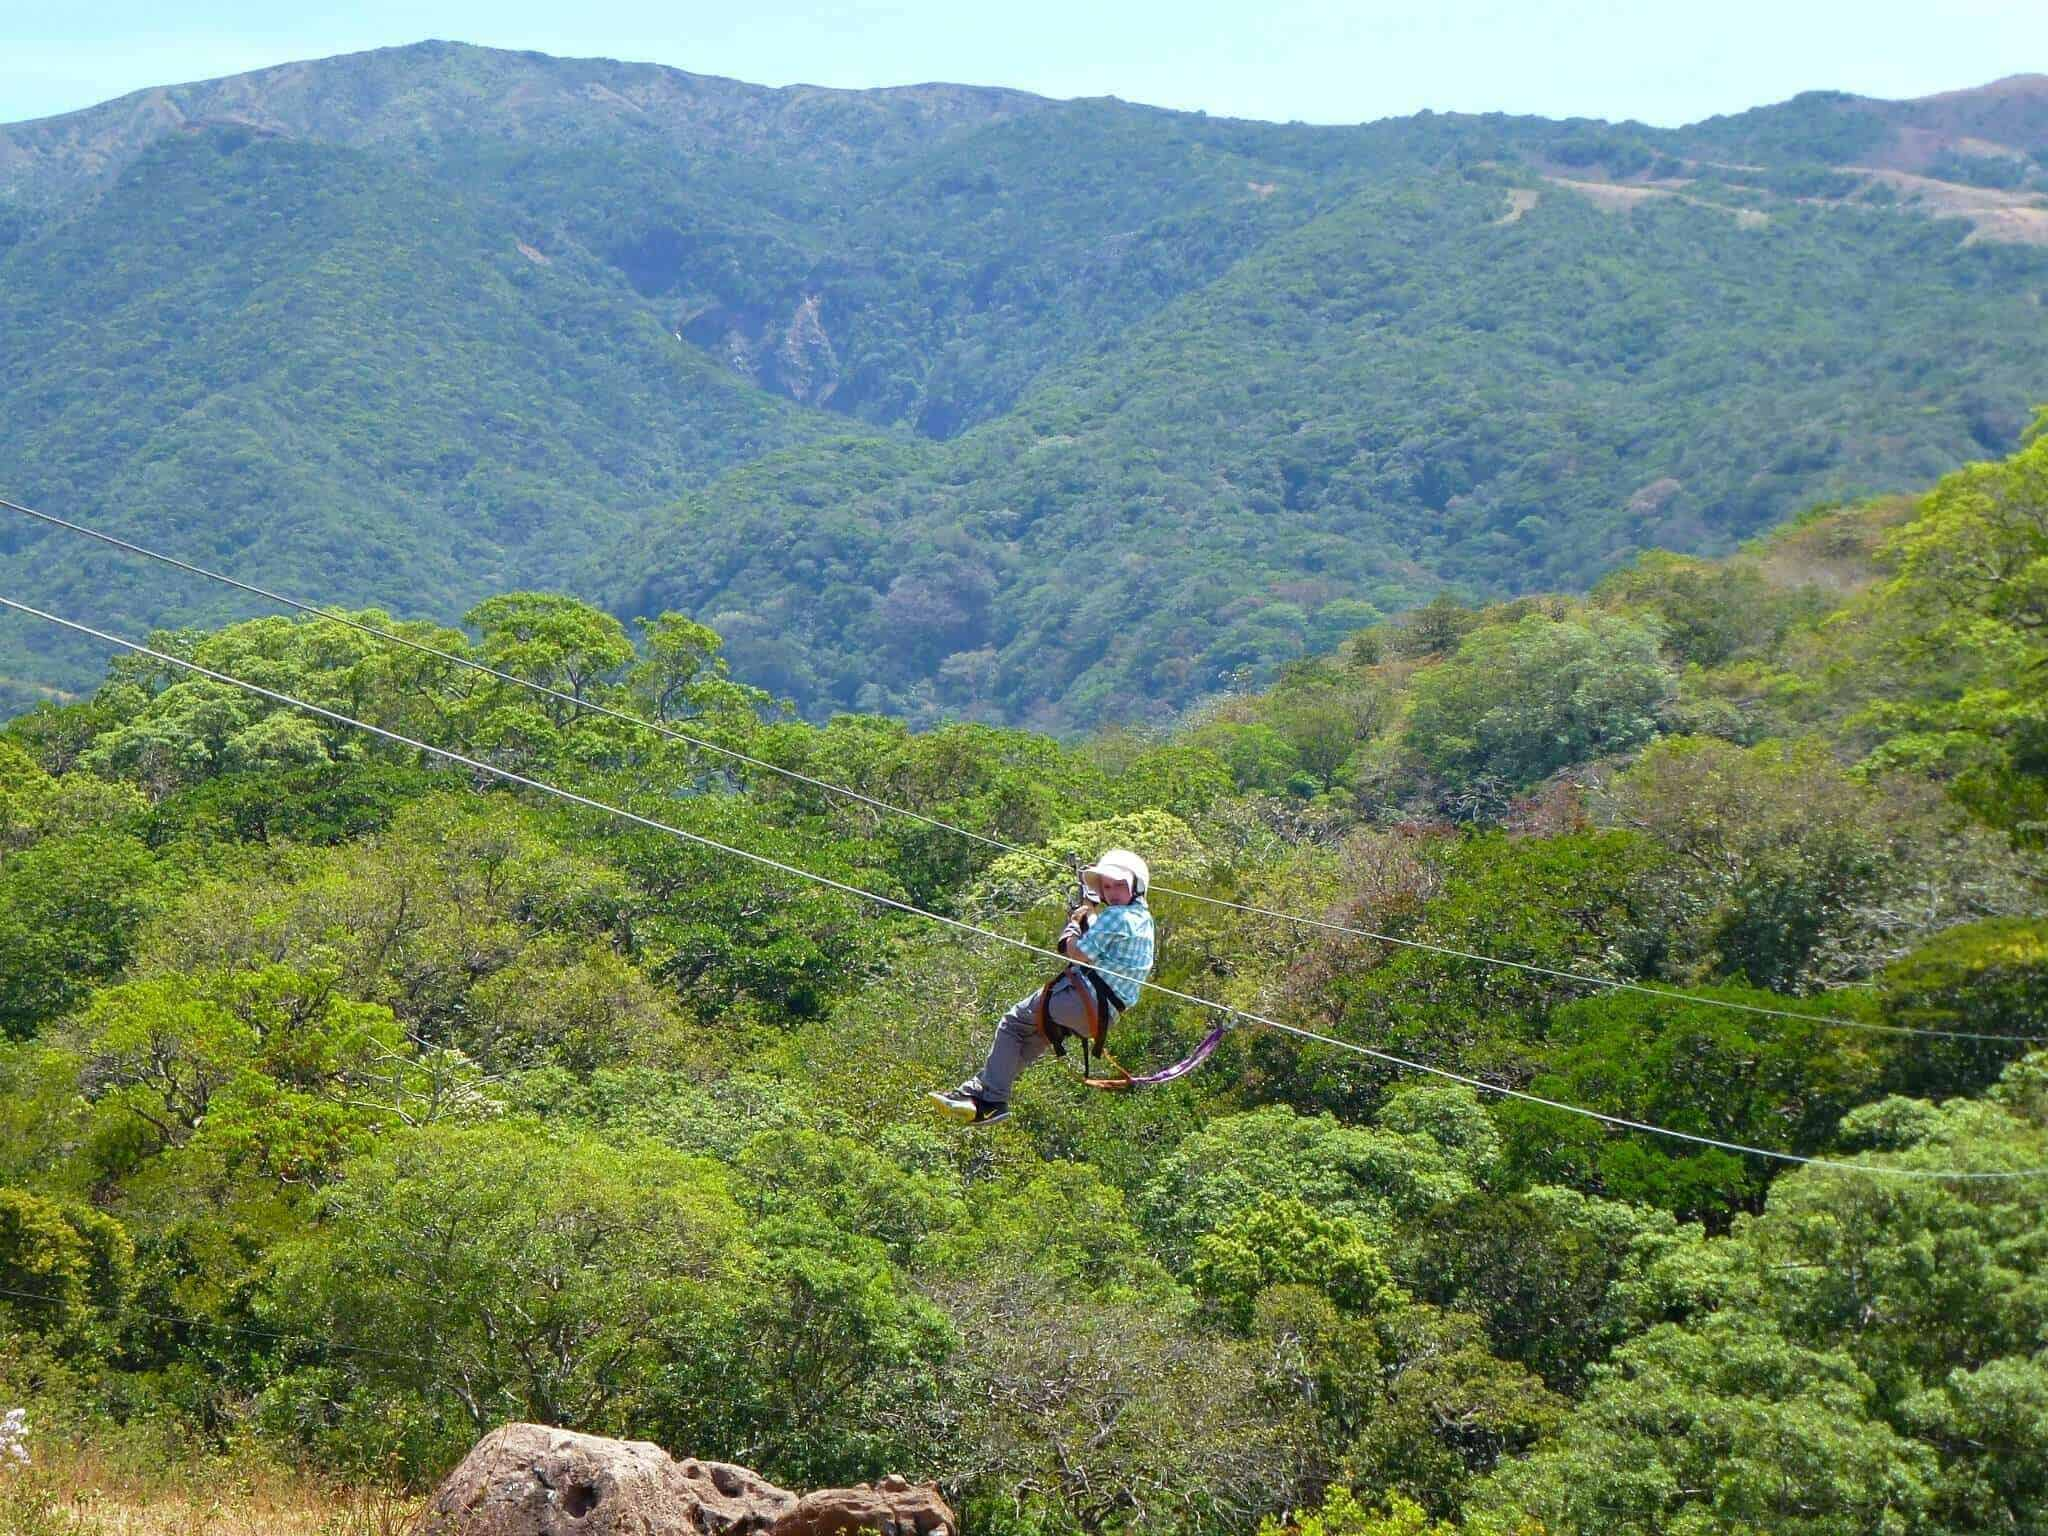 Zip-lining or canopy tours are a thrilling way to experience Costa Rica's volcanoes and rainforest